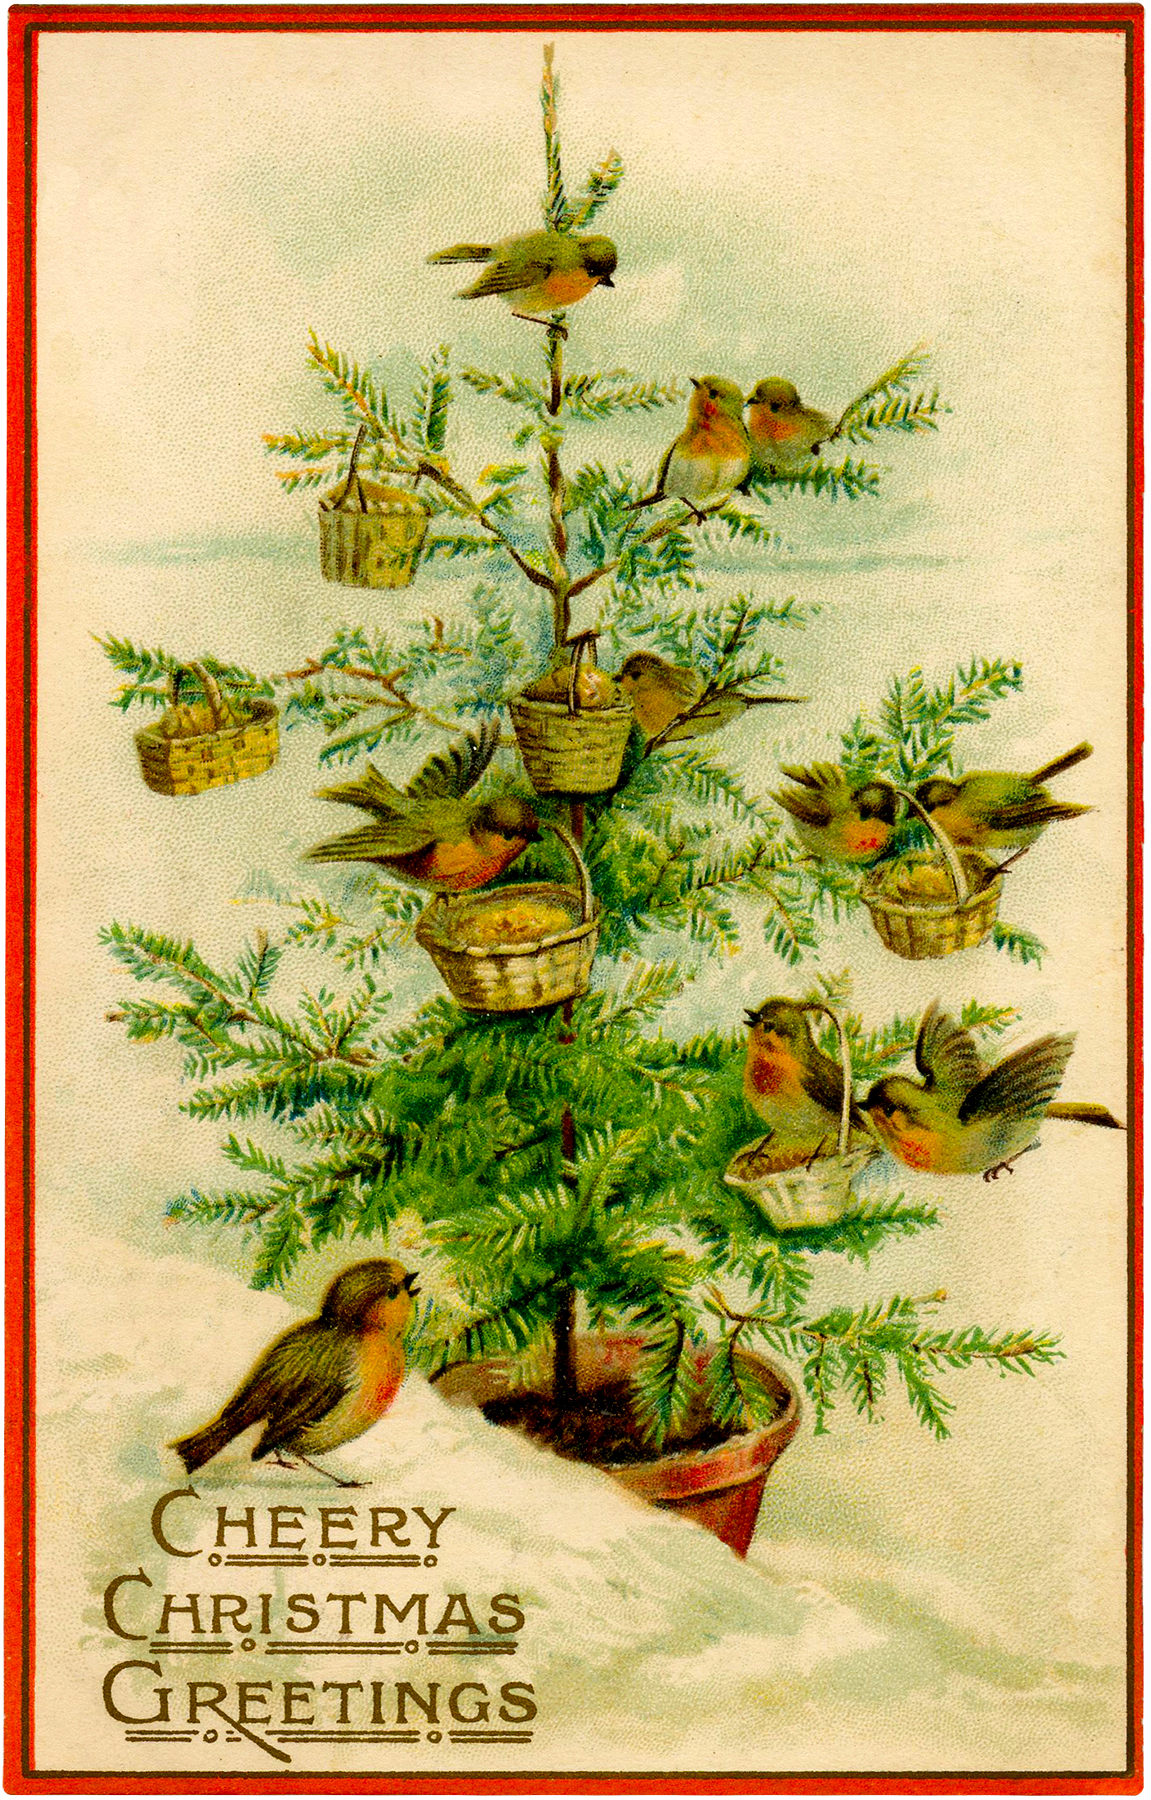 Free printable vintage christmas cards - 271 Best Birds Old Vintage Cards Illustrations Images On Pinterest Vintage Cards Postcards And Blue Green